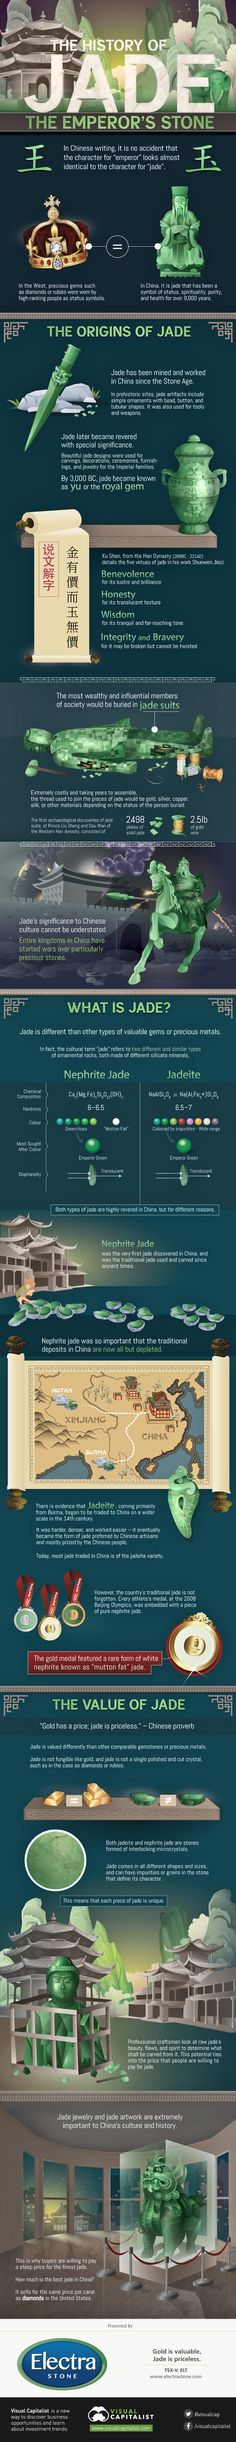 Jade is an important part of Chinese culture. #World #Culture #China